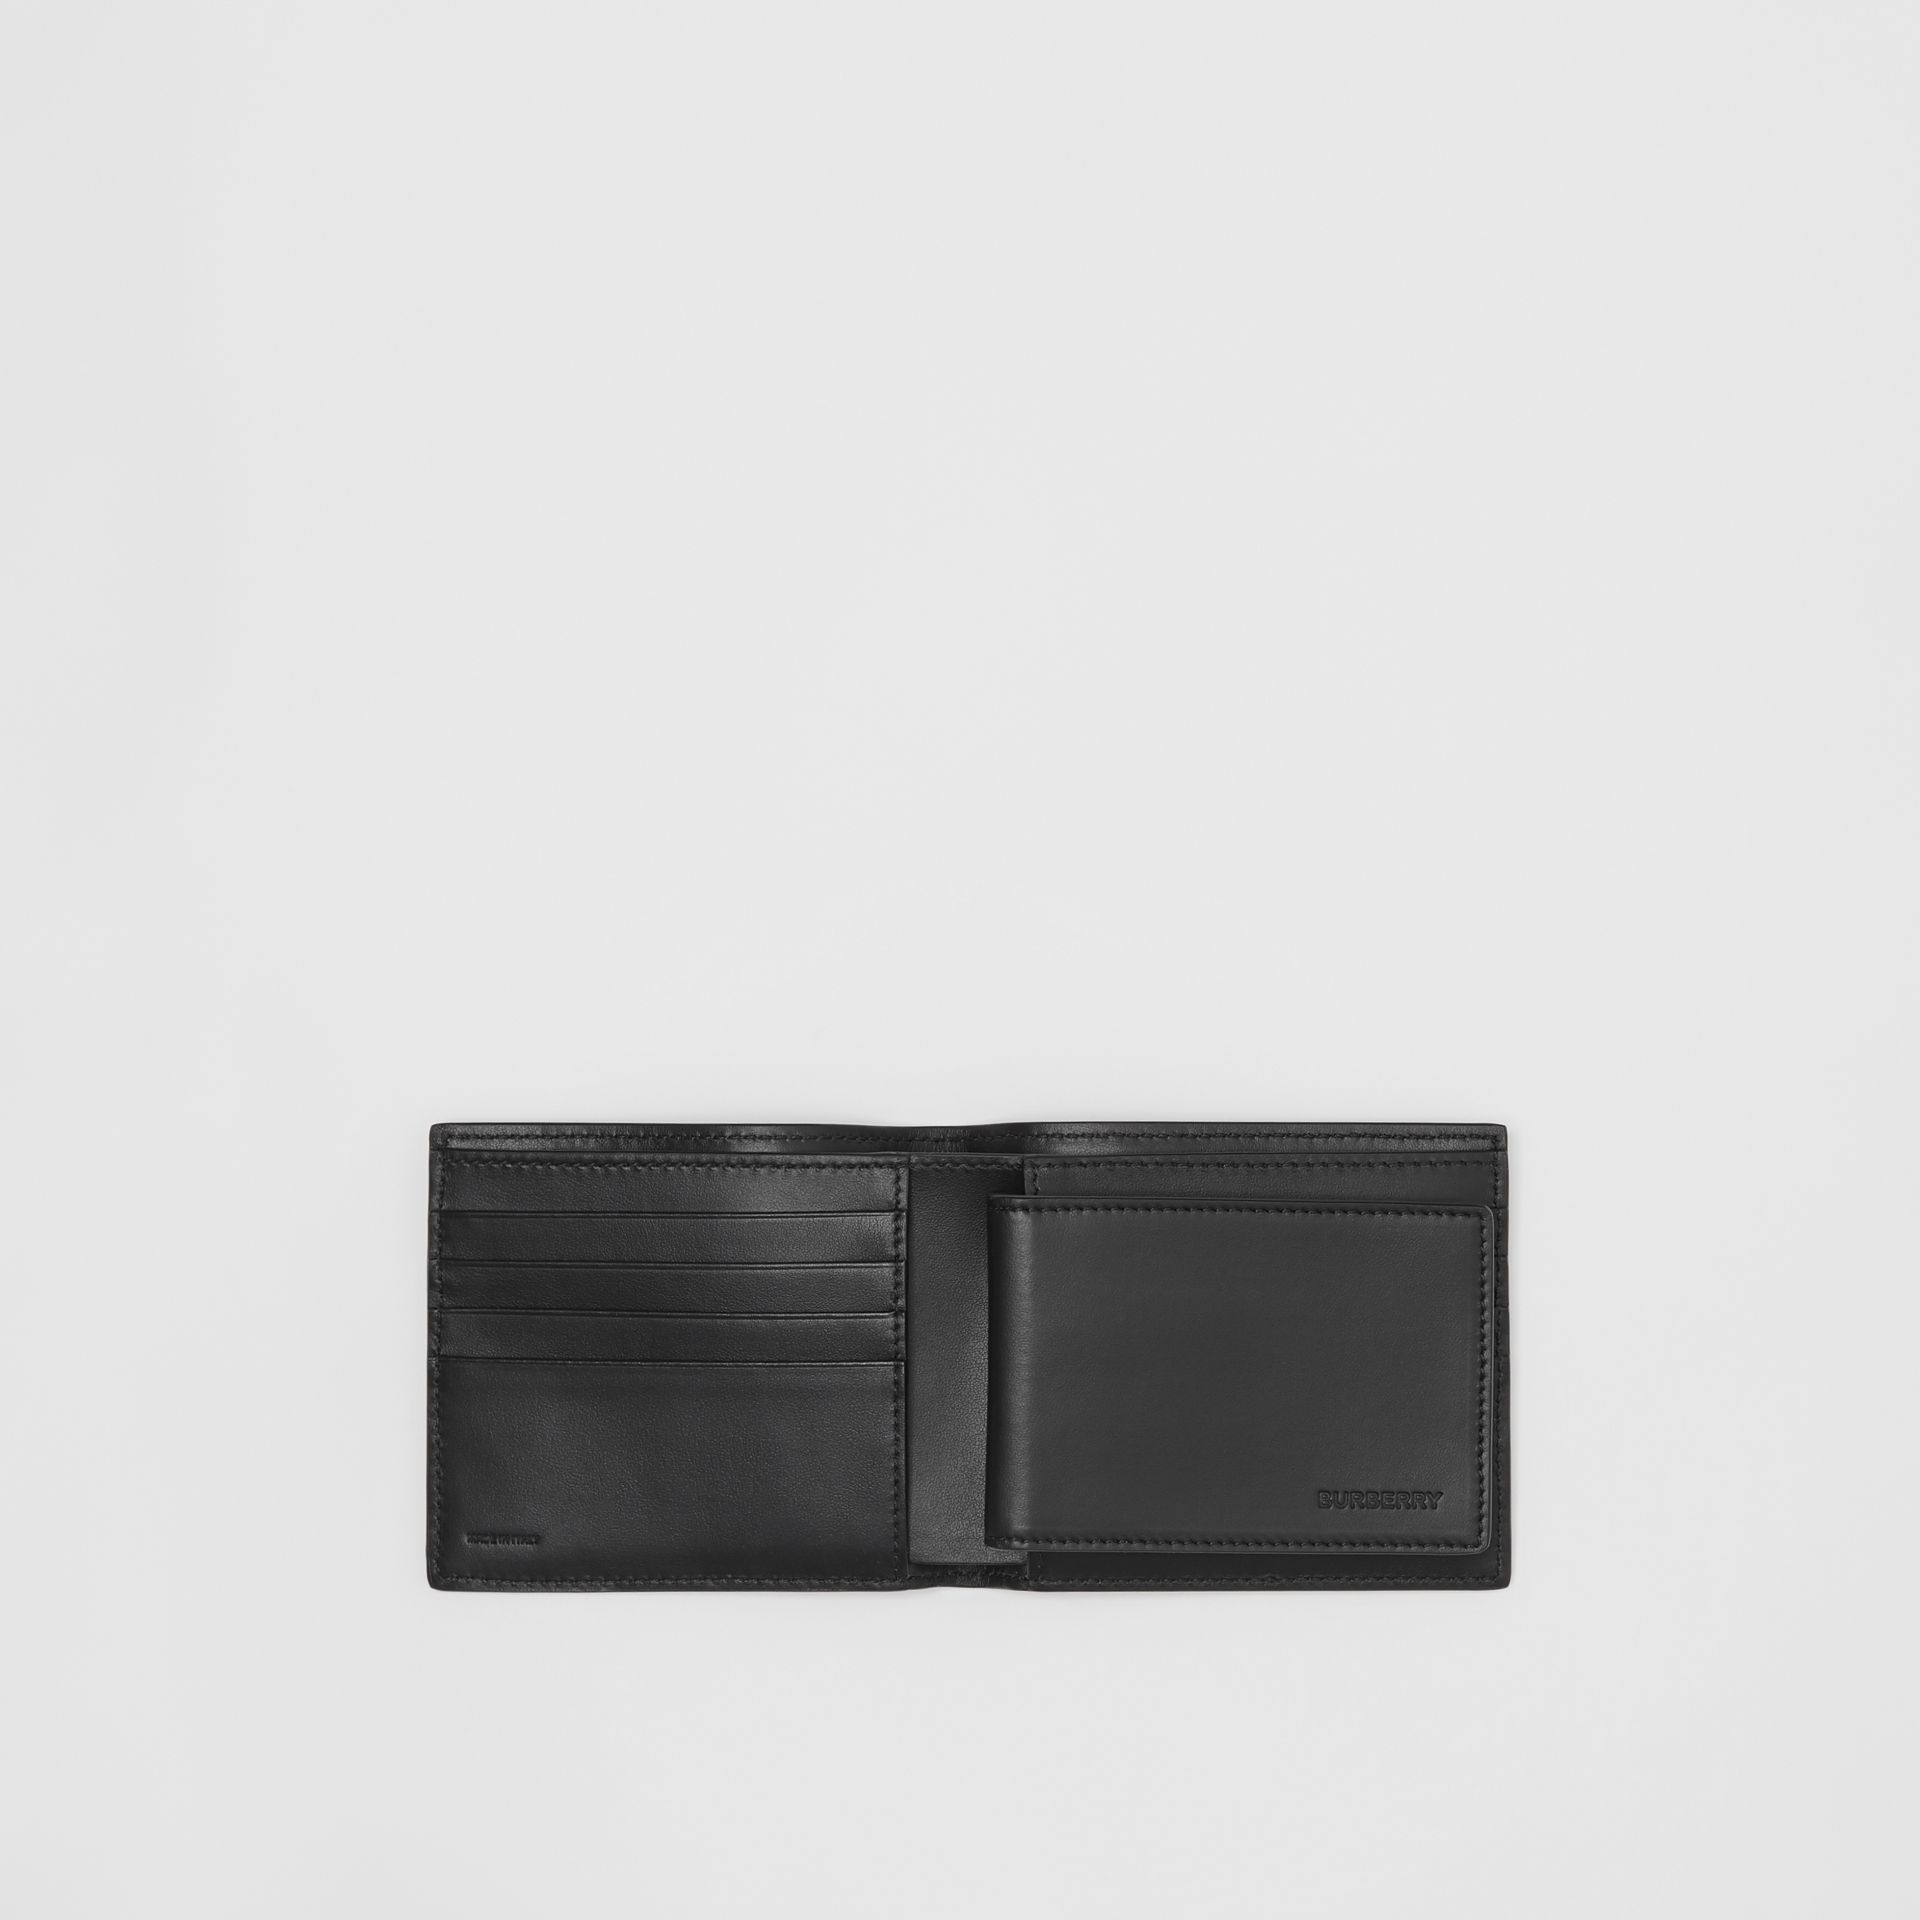 Monogram Leather Bifold Wallet with ID Card Case in Black - Men | Burberry Australia - gallery image 2